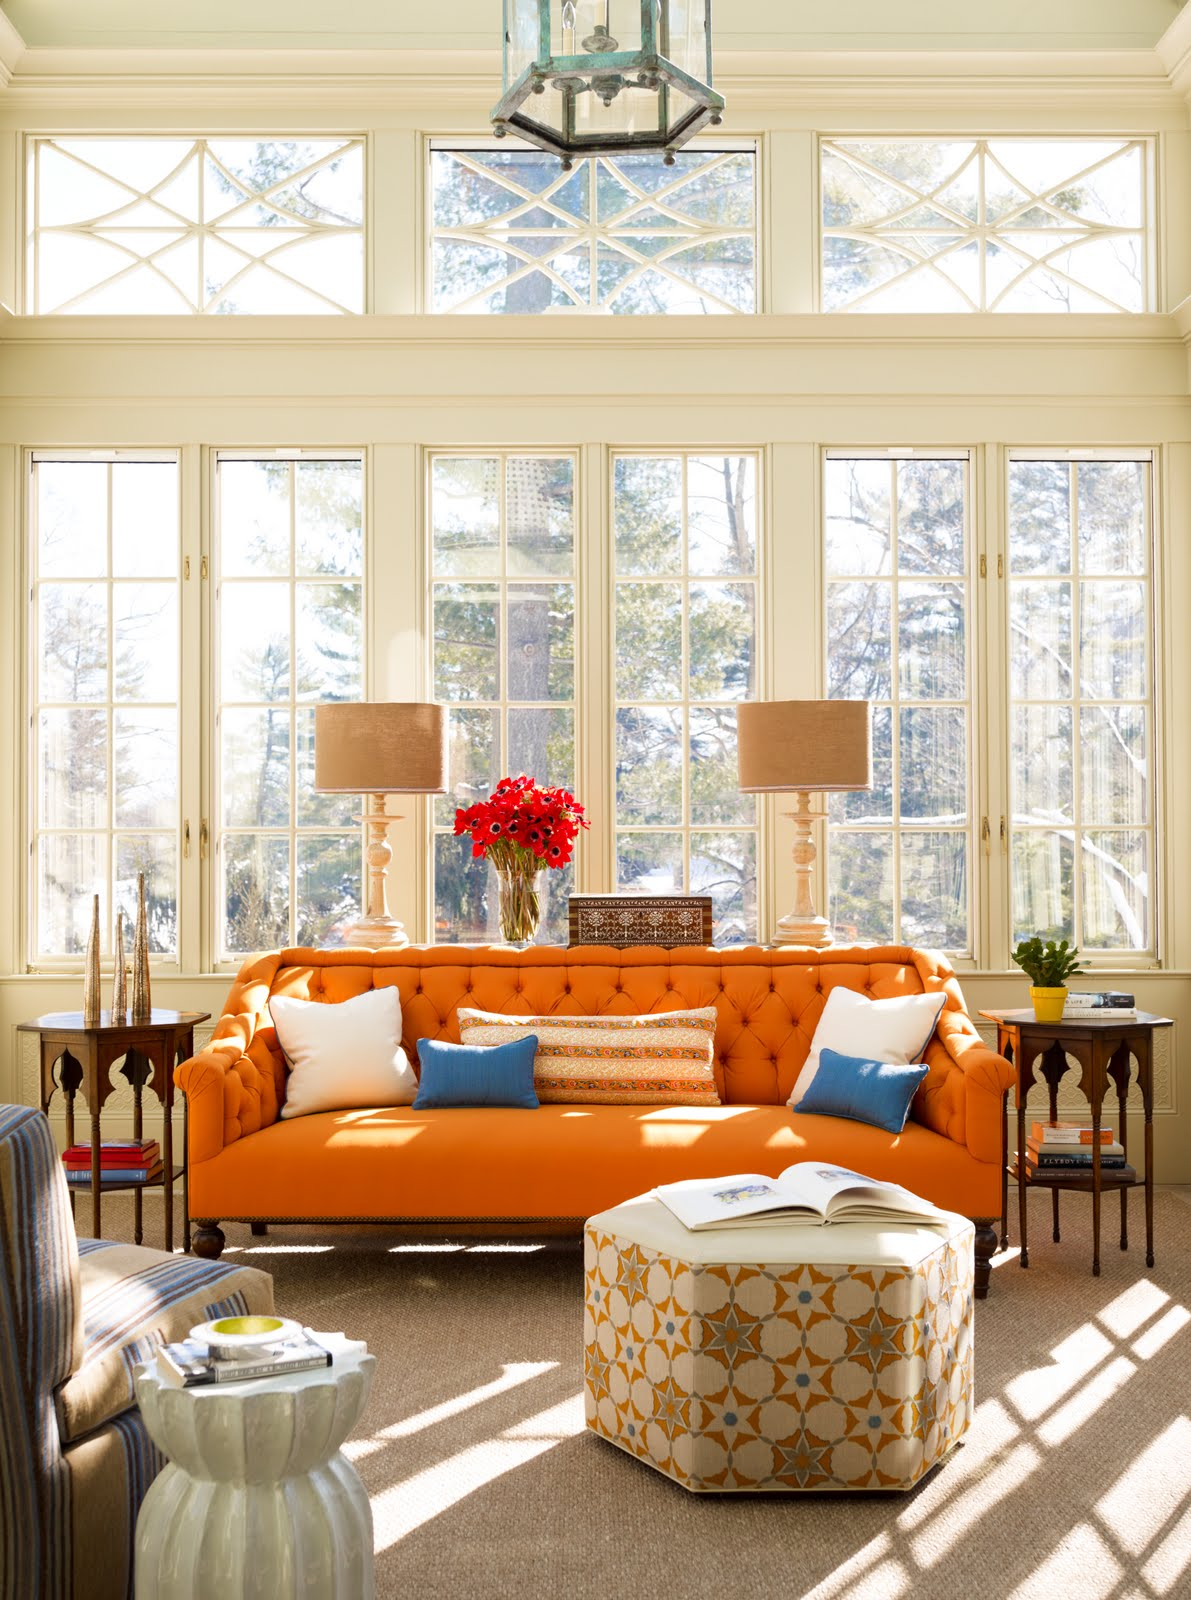 Comfortable Orange Chesterfield Sofa Design With Hexagonal Patterned Coffee  Table And Lamps And Chandelier And Glass Part 70